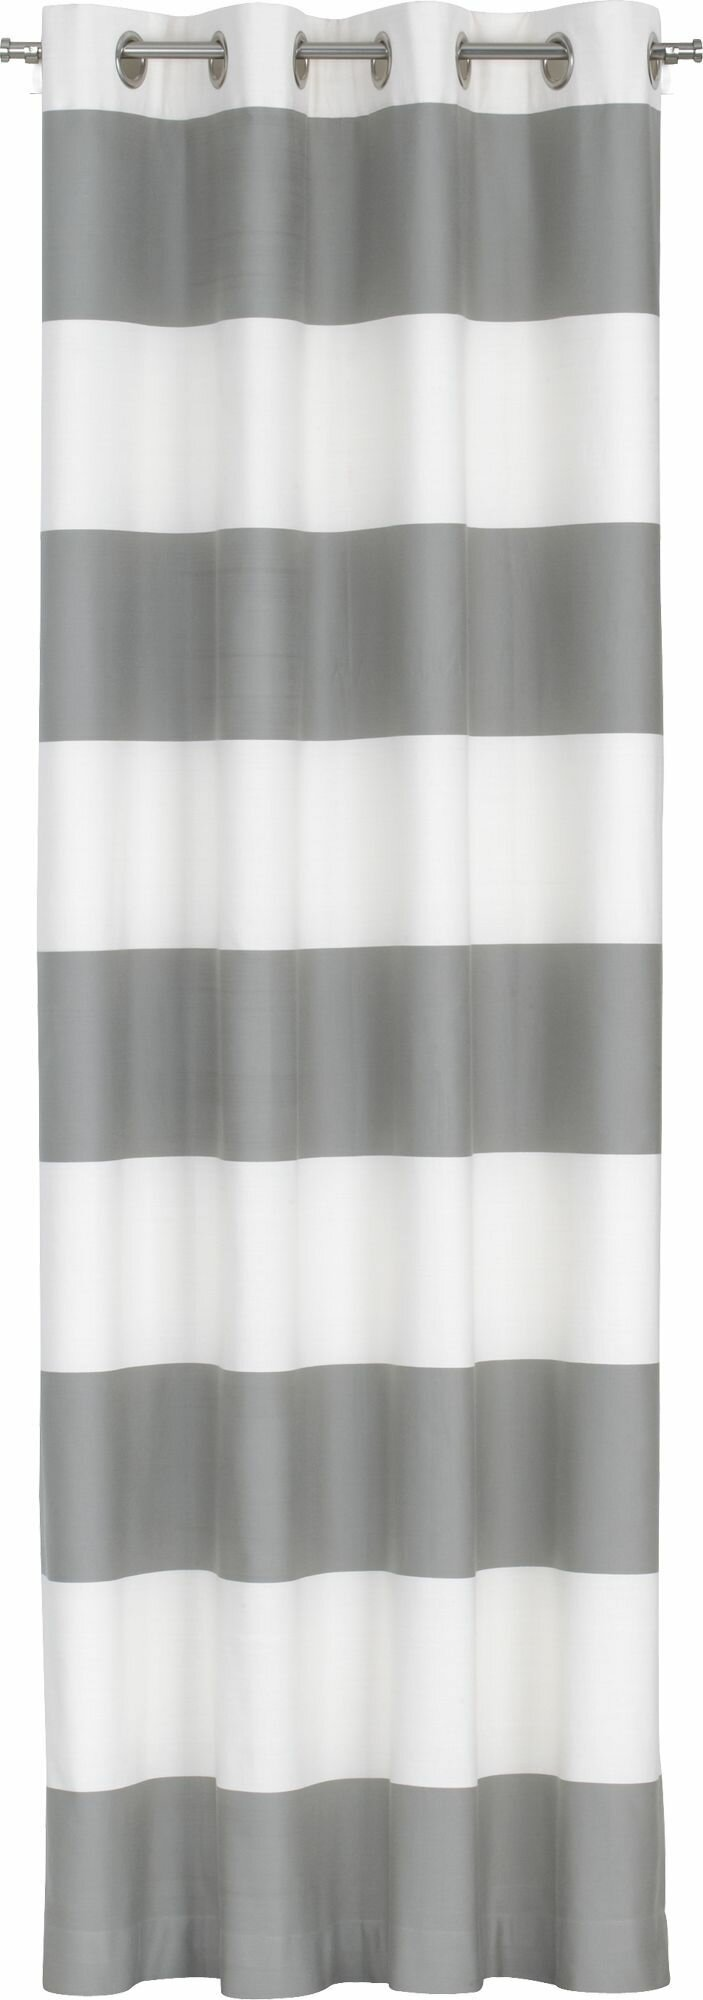 Extra Long White Shower Curtain | Restoration Hardware Shower Curtain | Oil Rubbed Bronze Curtain Rods